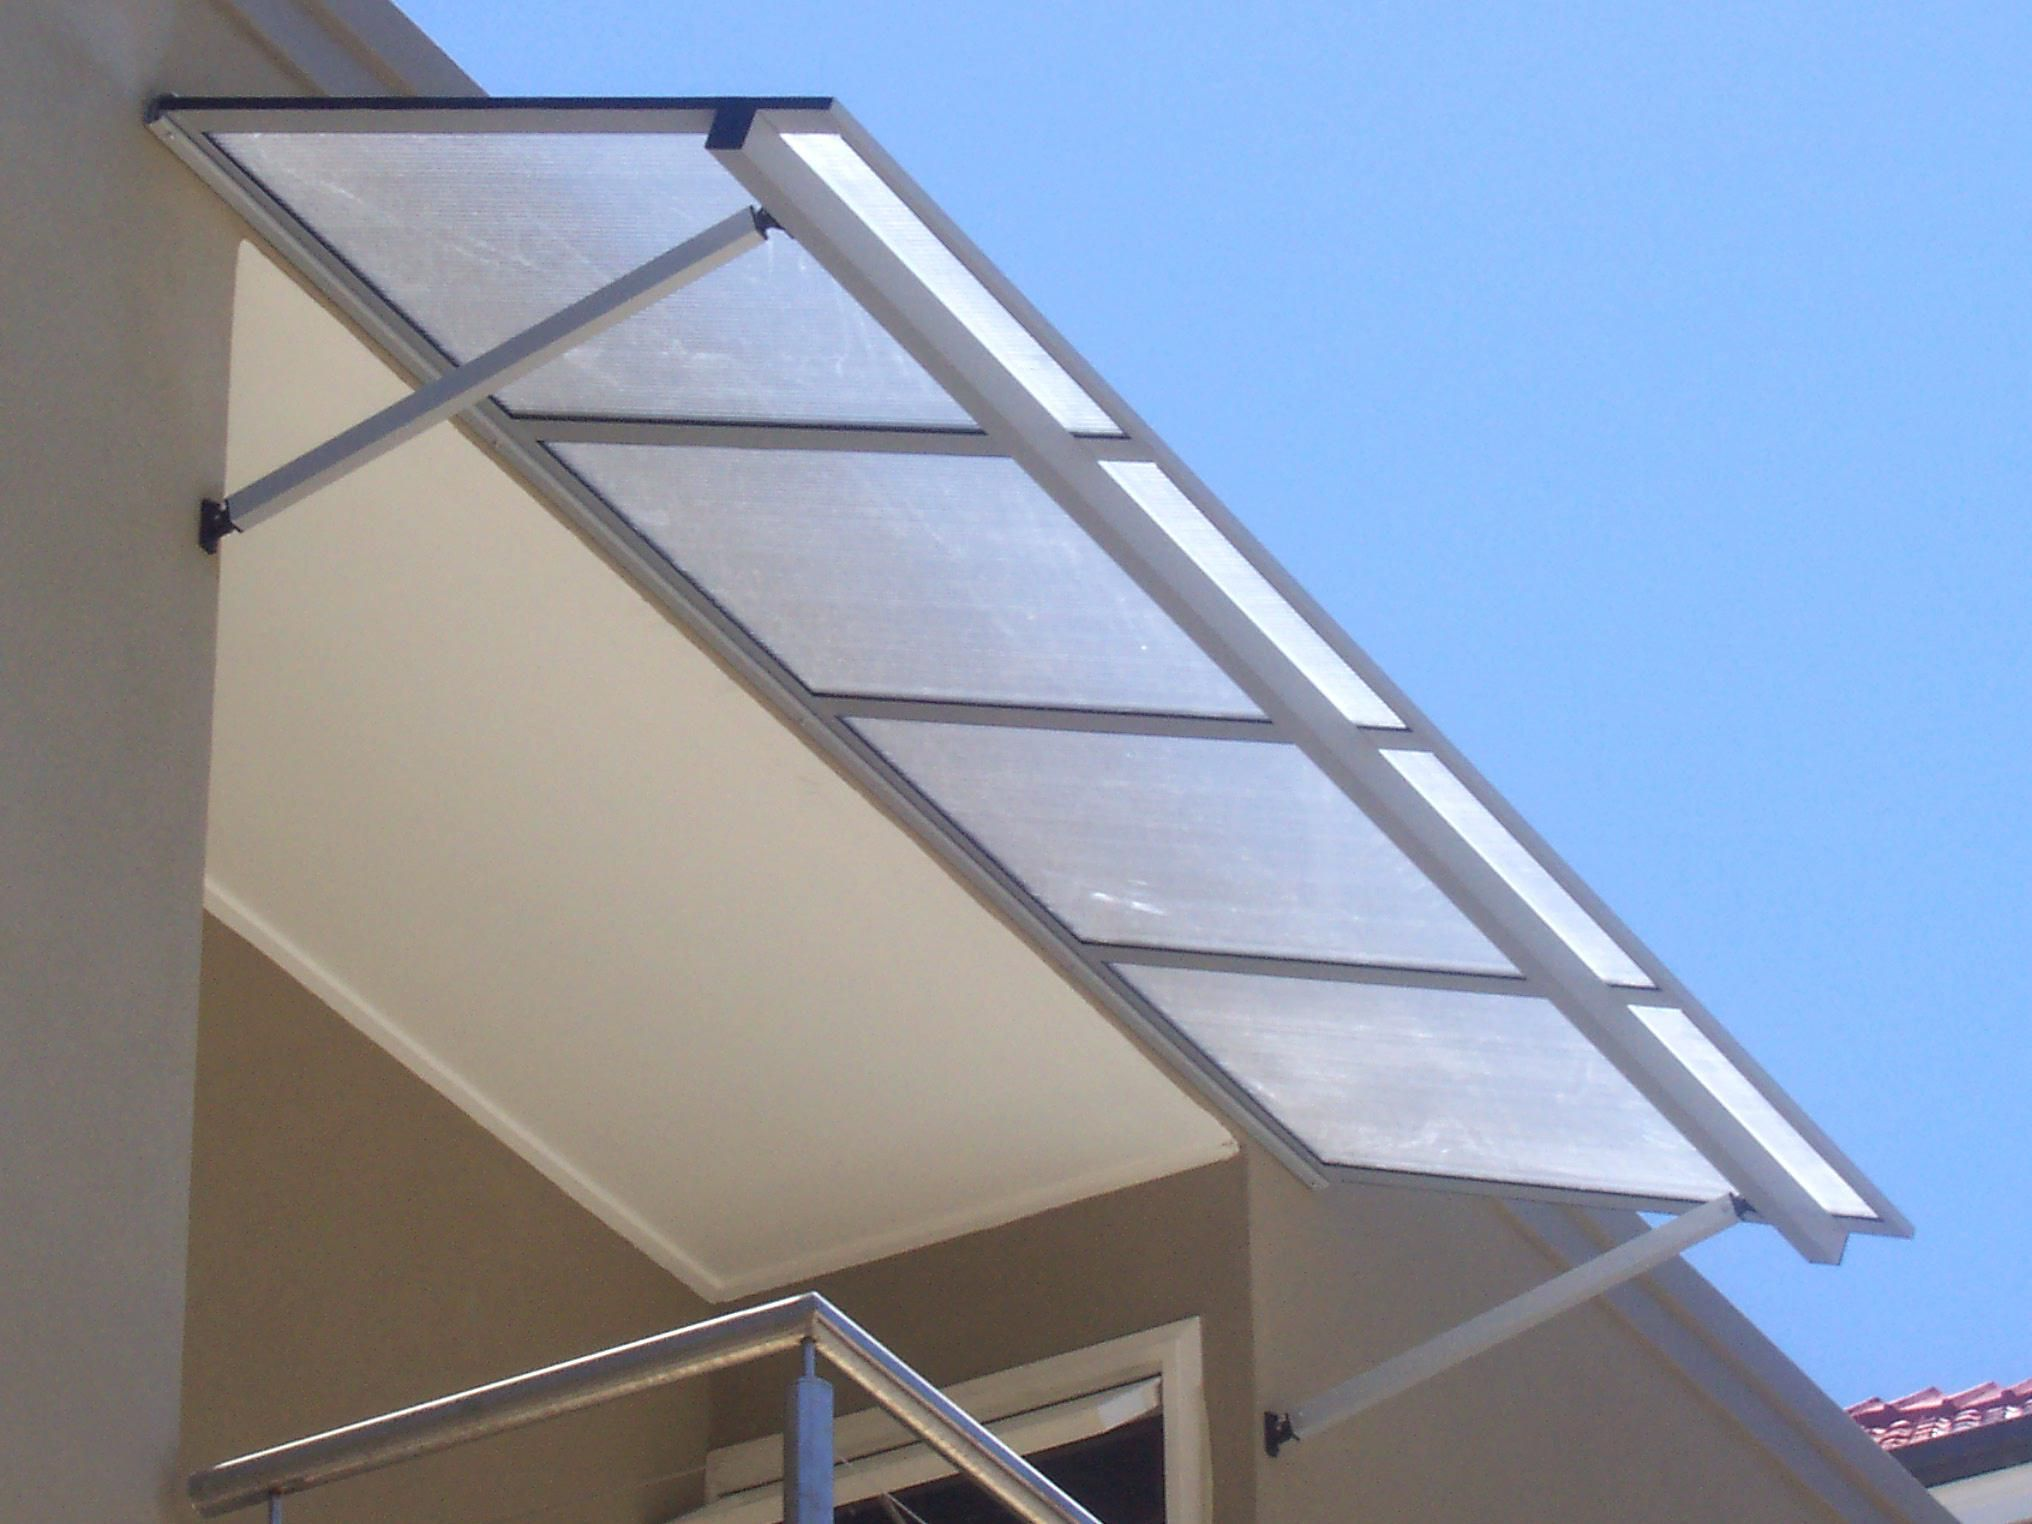 Polycarbonate Awning Brackets Flat Window Awnings Blinds And Flat Window Awnings Interior Doors For Sale Awning Windows Window Awnings